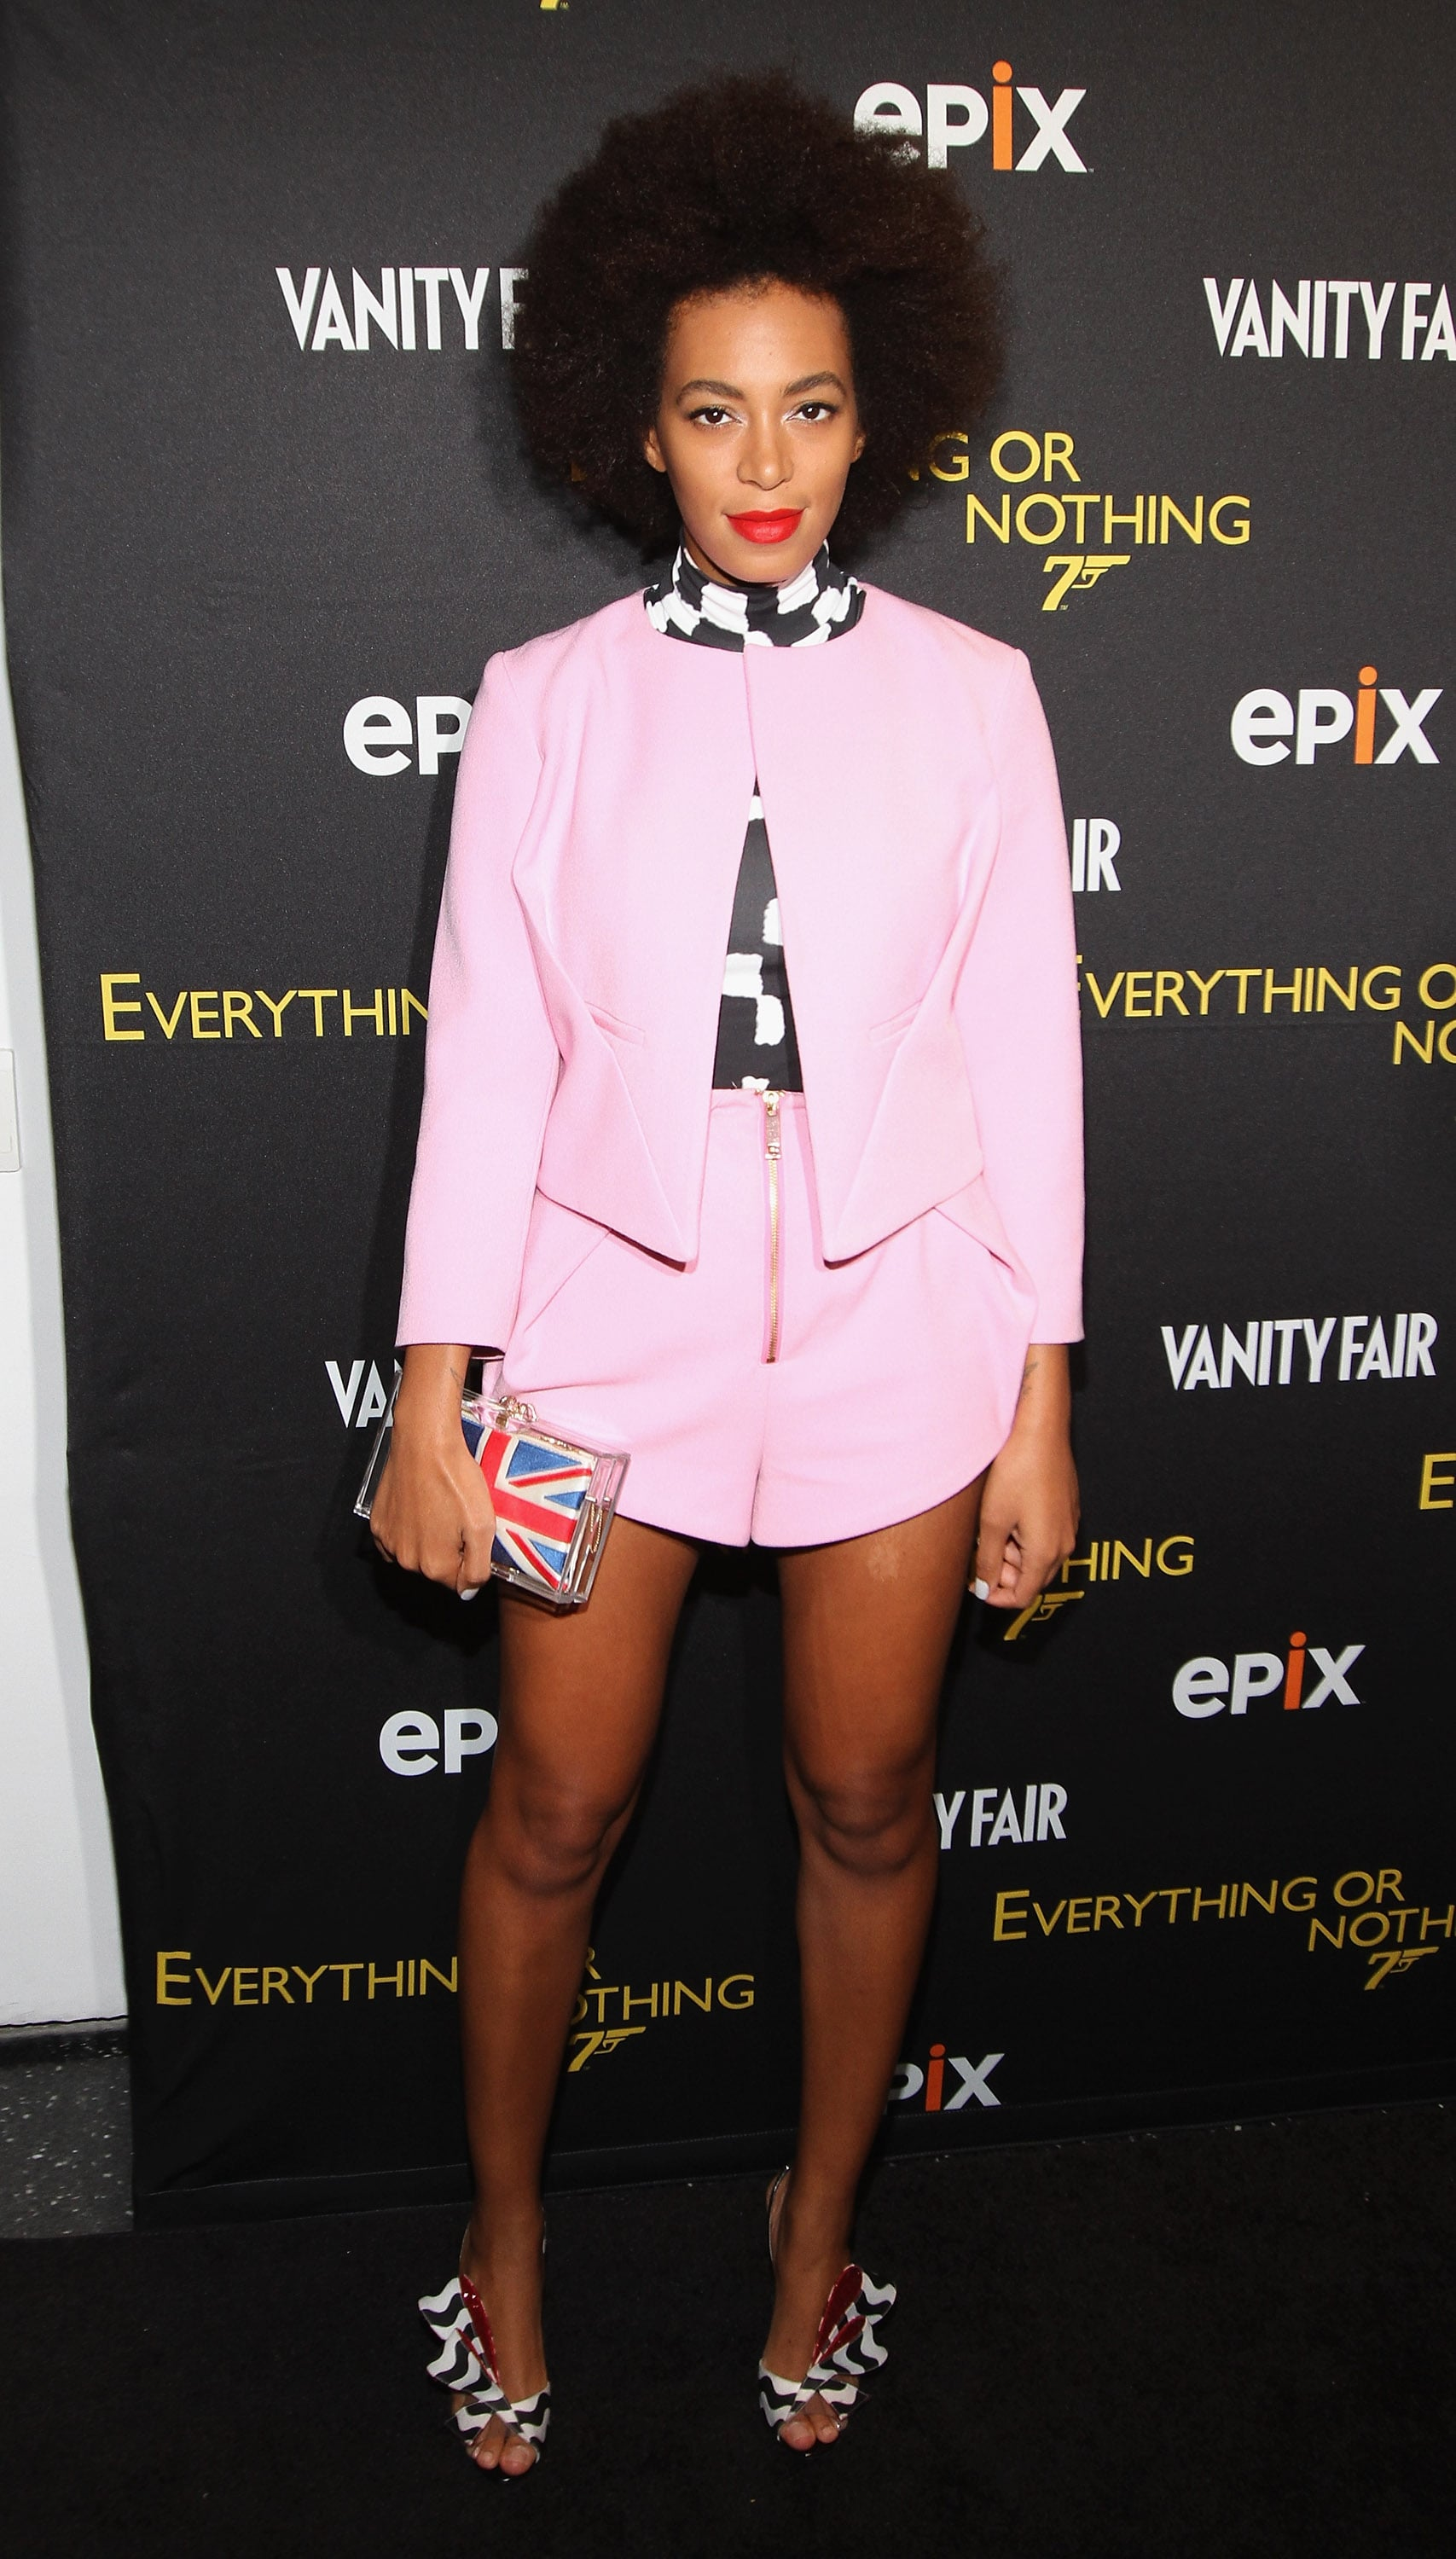 Solange Knowles dared to wear a pink Twenty8Twelve shorts suit with a checkered turtleneck and matching black-and-white printed Nicholas Kirkwood sandals at the NYC premiere of Everything or Nothing.